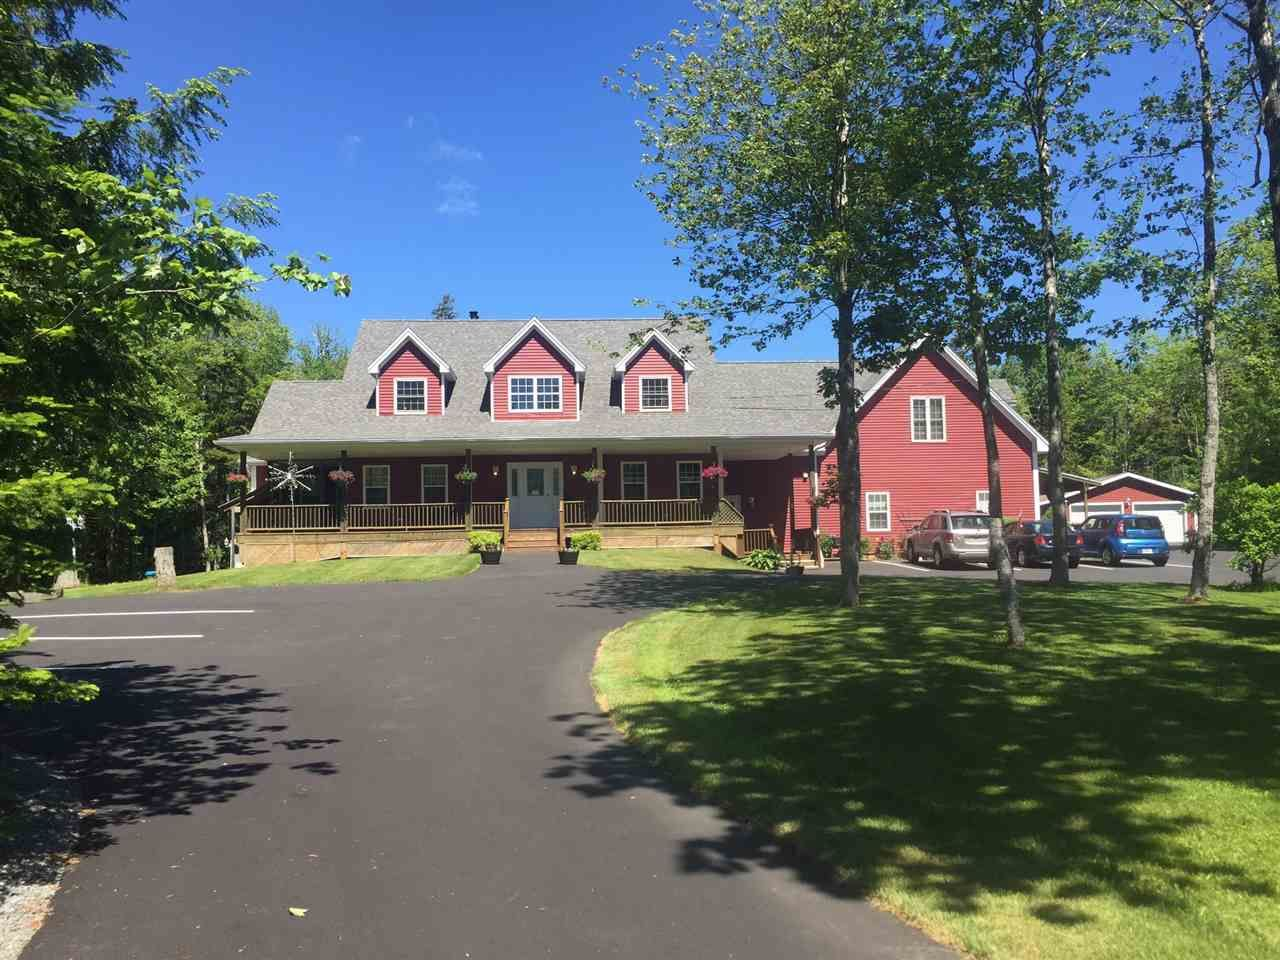 Photo 1: Photos: 6177 Highway 2 in Oakfield: 30-Waverley, Fall River, Oakfield Residential for sale (Halifax-Dartmouth)  : MLS®# 202025905